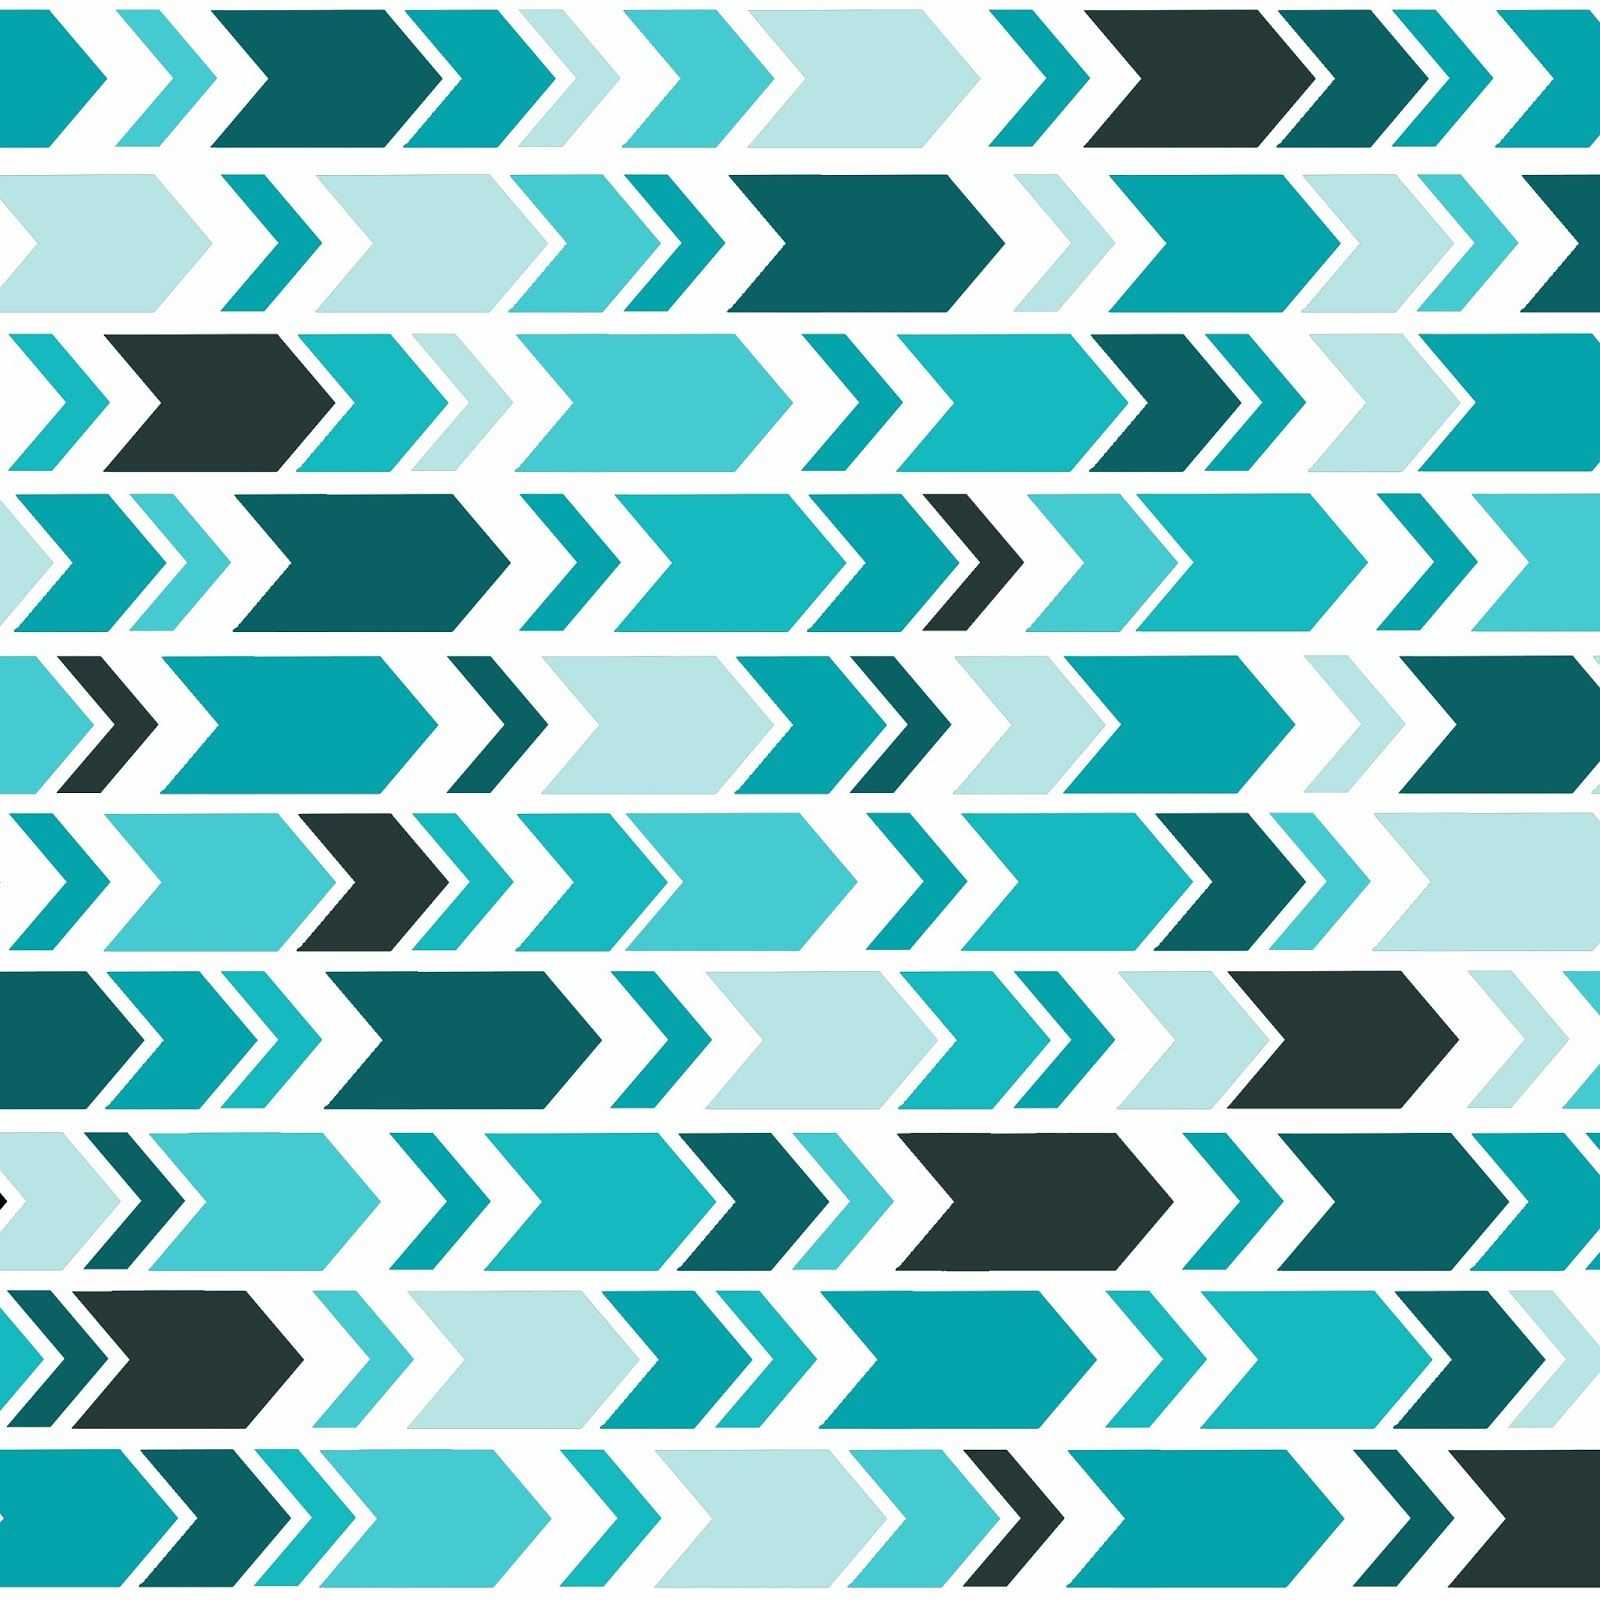 Printable Patterns | My Blog